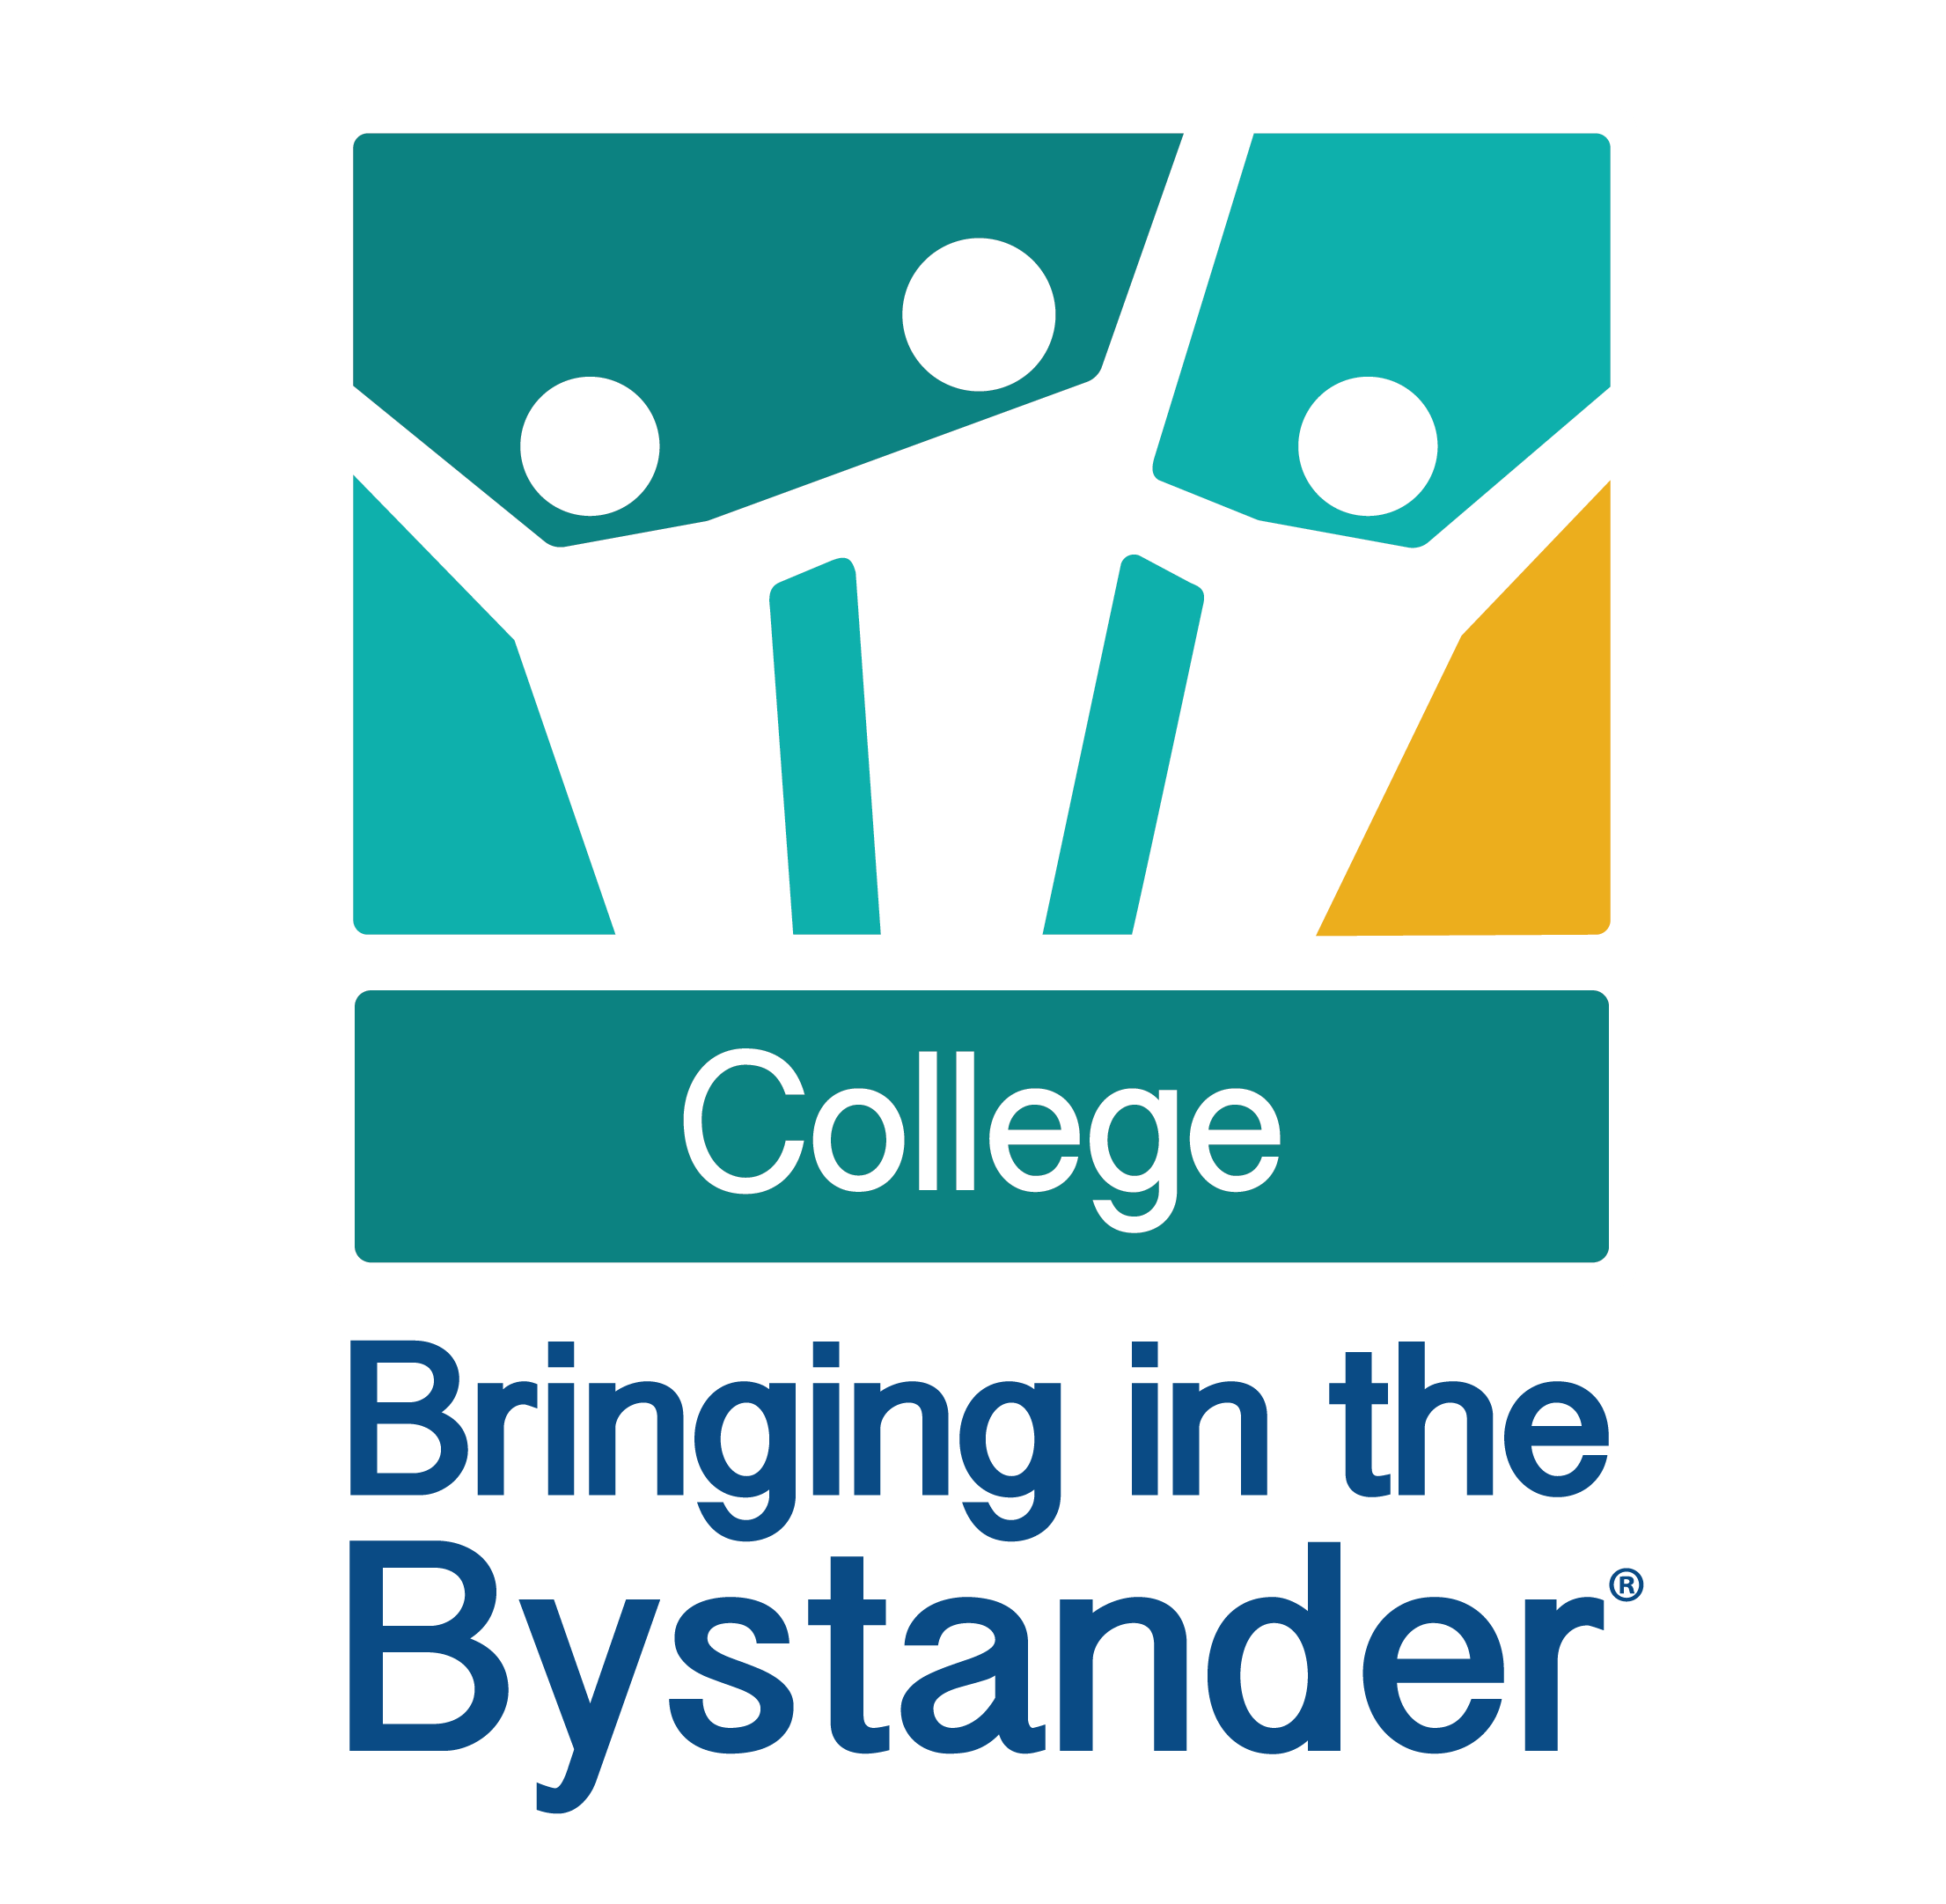 Image of Bringing in the Bystander®